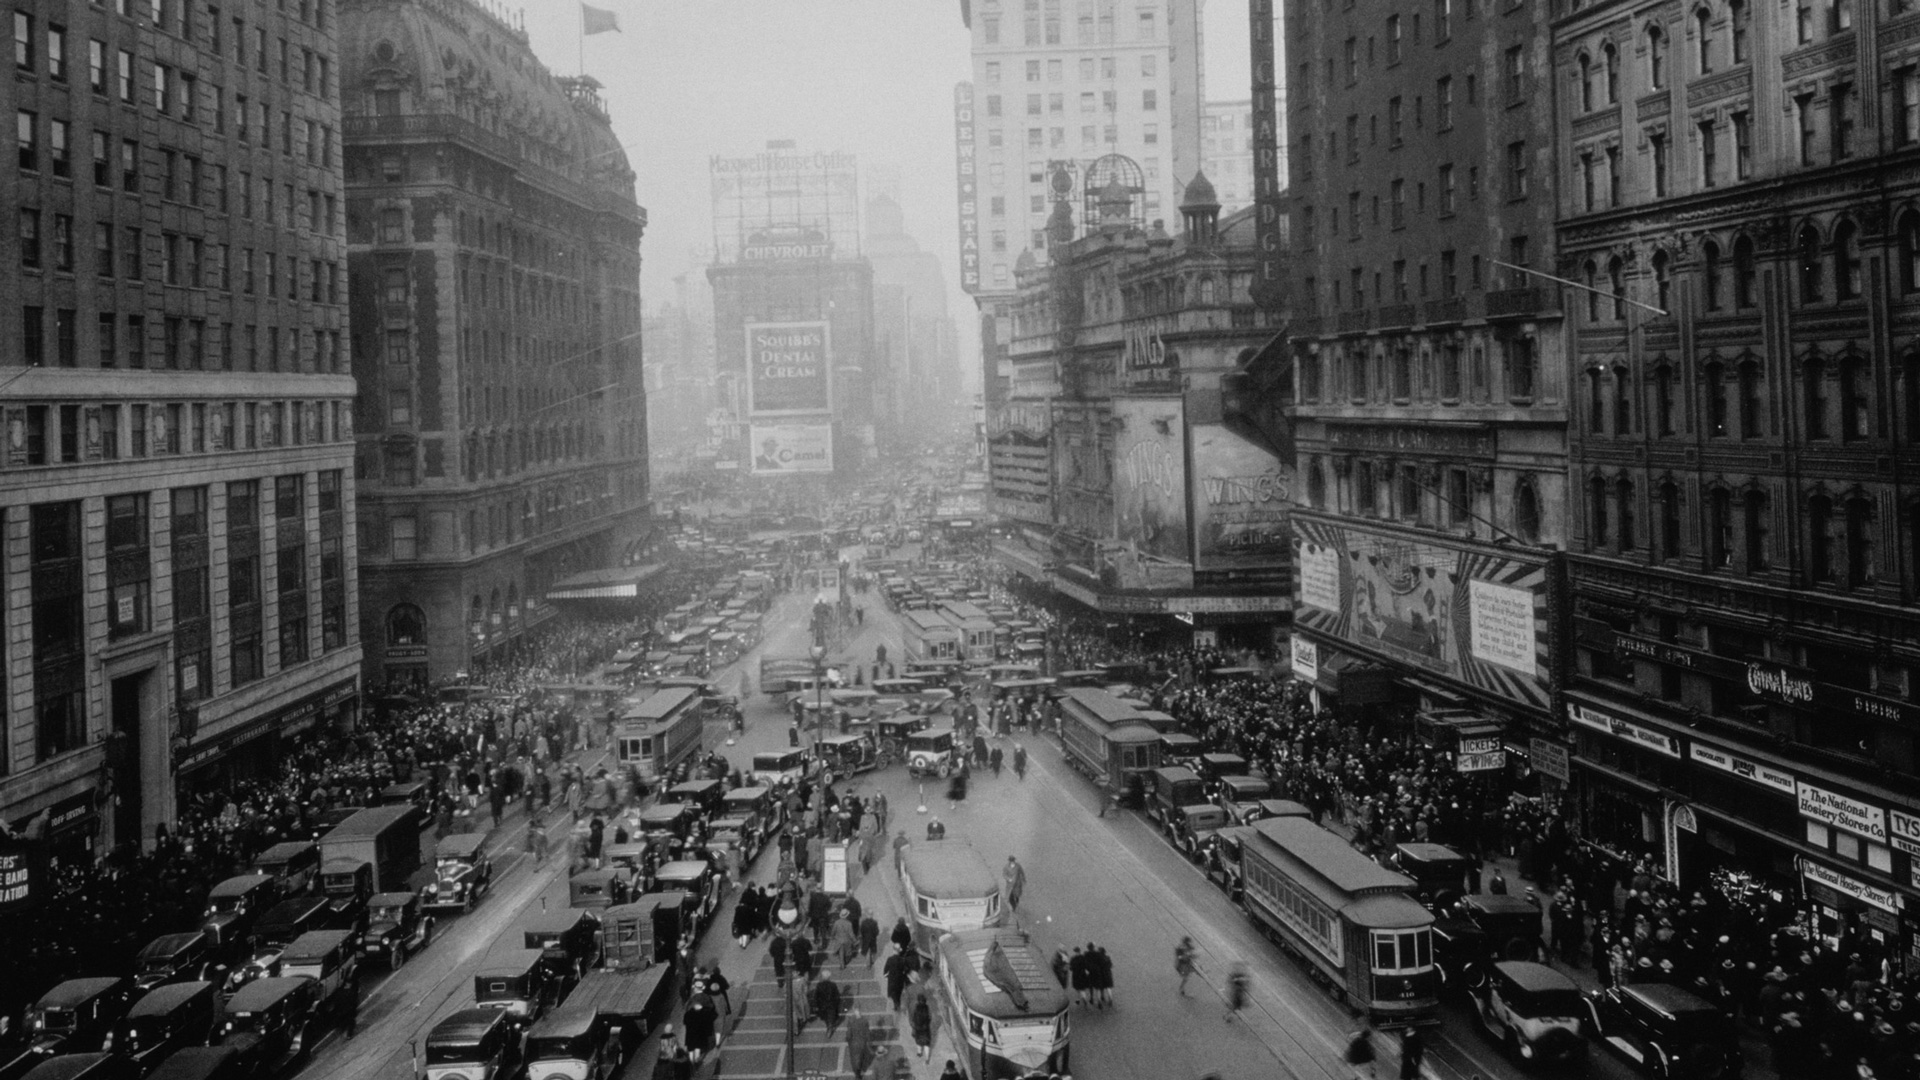 a picture of nyc in the 20s